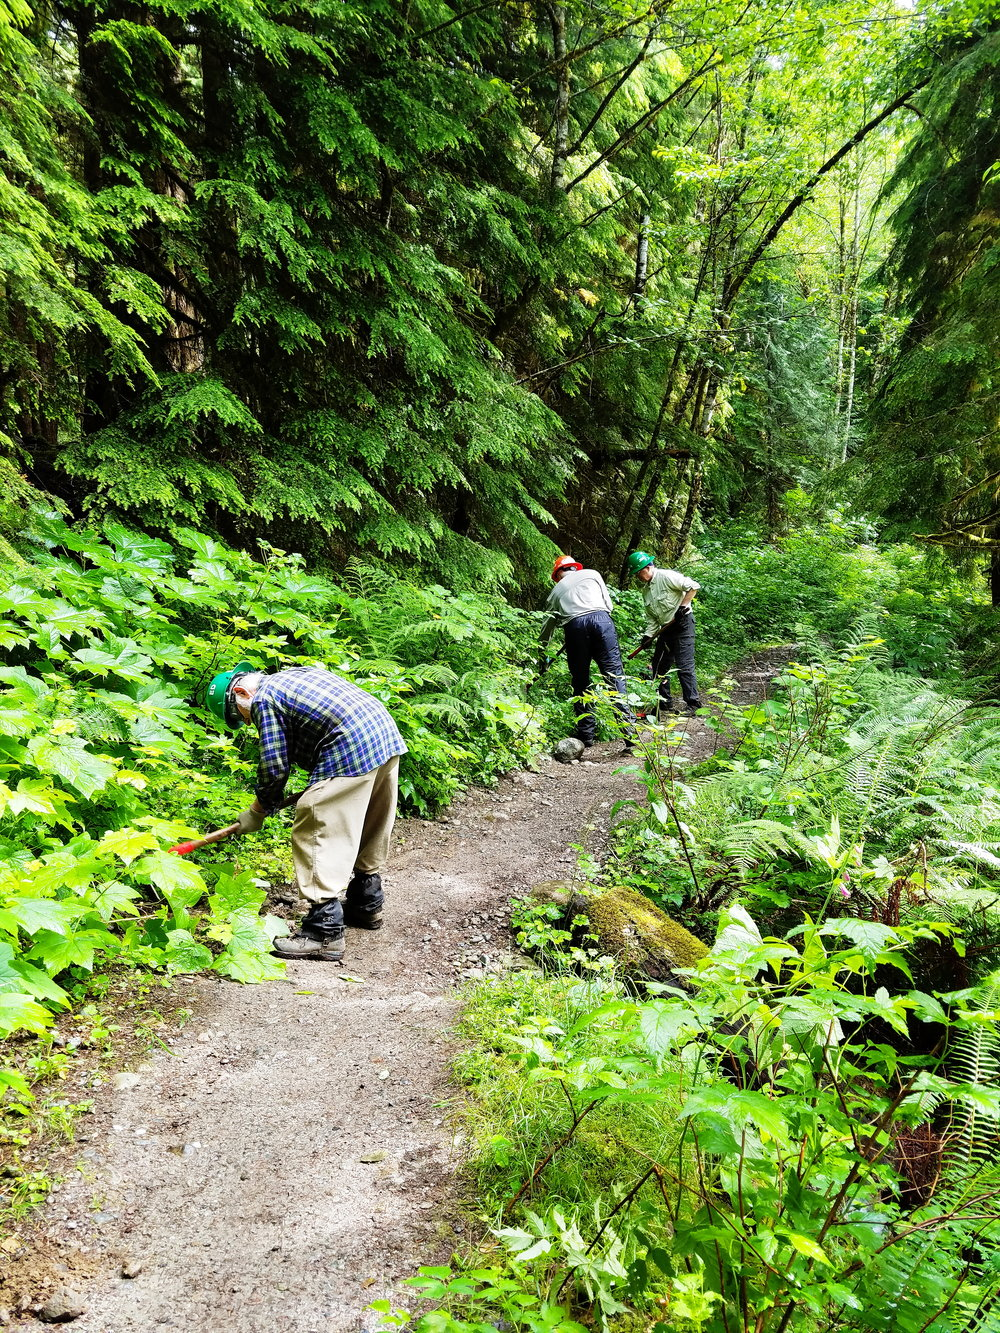 Sunday - before our crew started the work of repairing a short stretch of trail eroding downslope